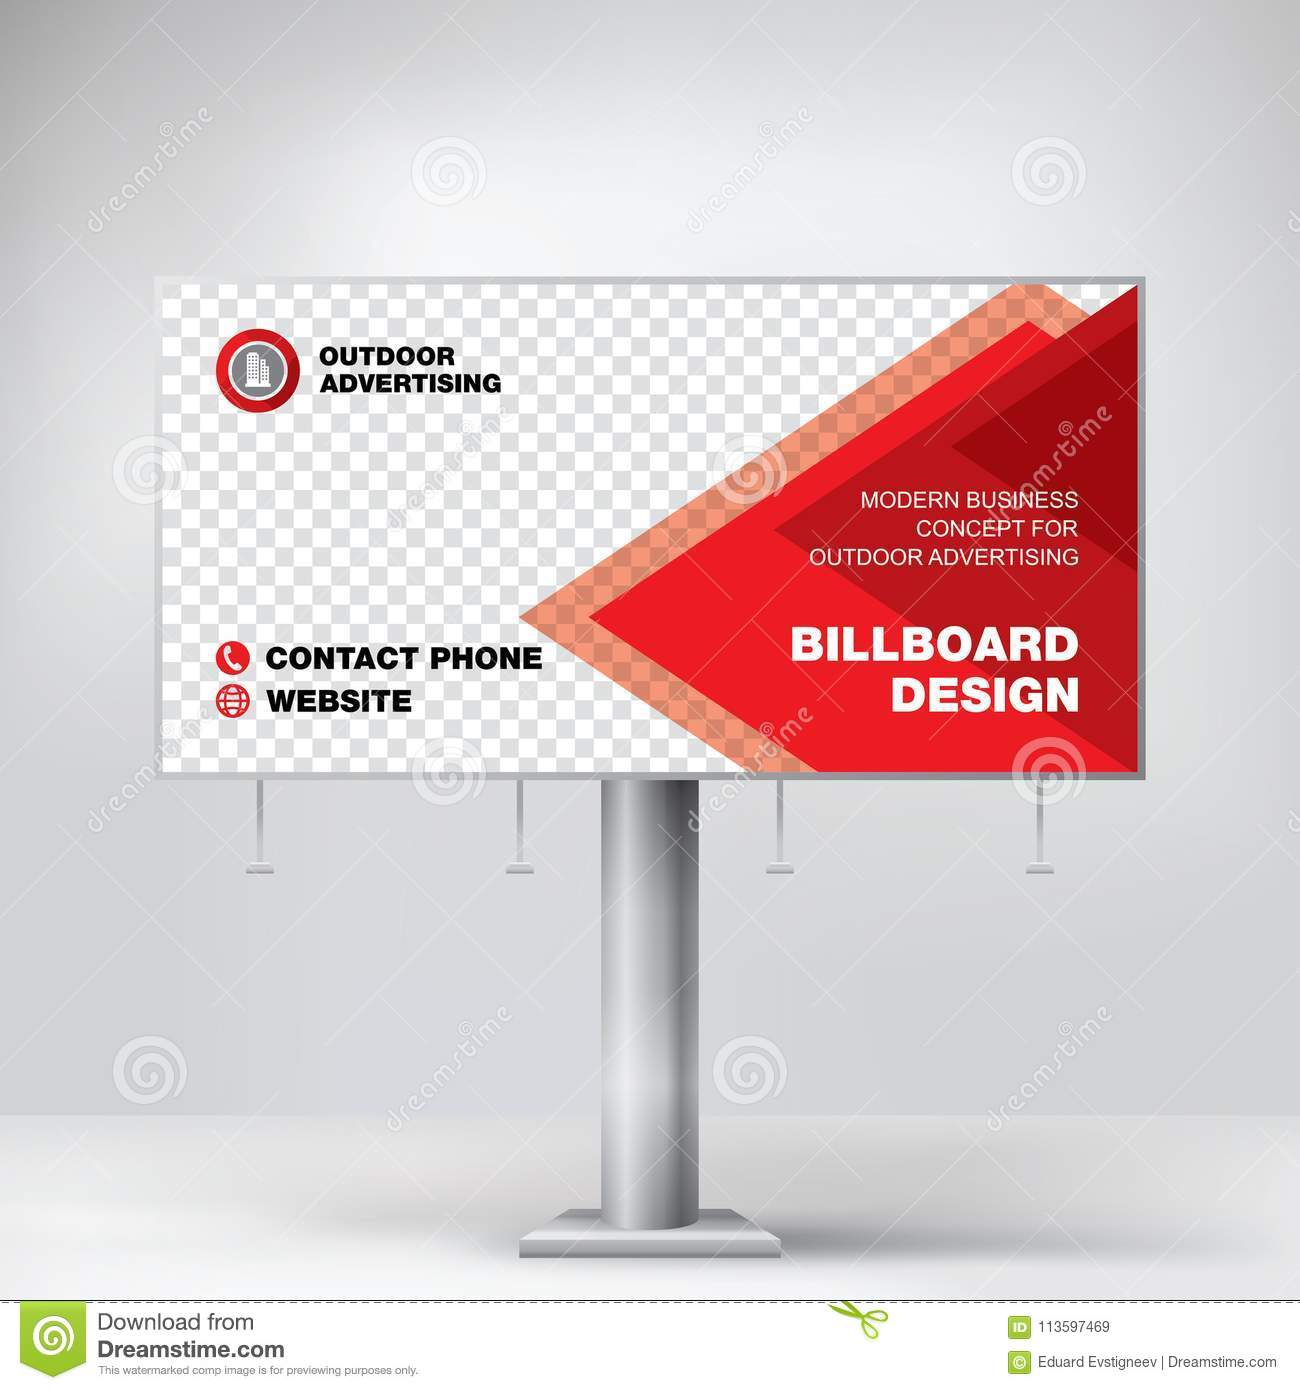 billboard design template banner for outdoor advertising posting